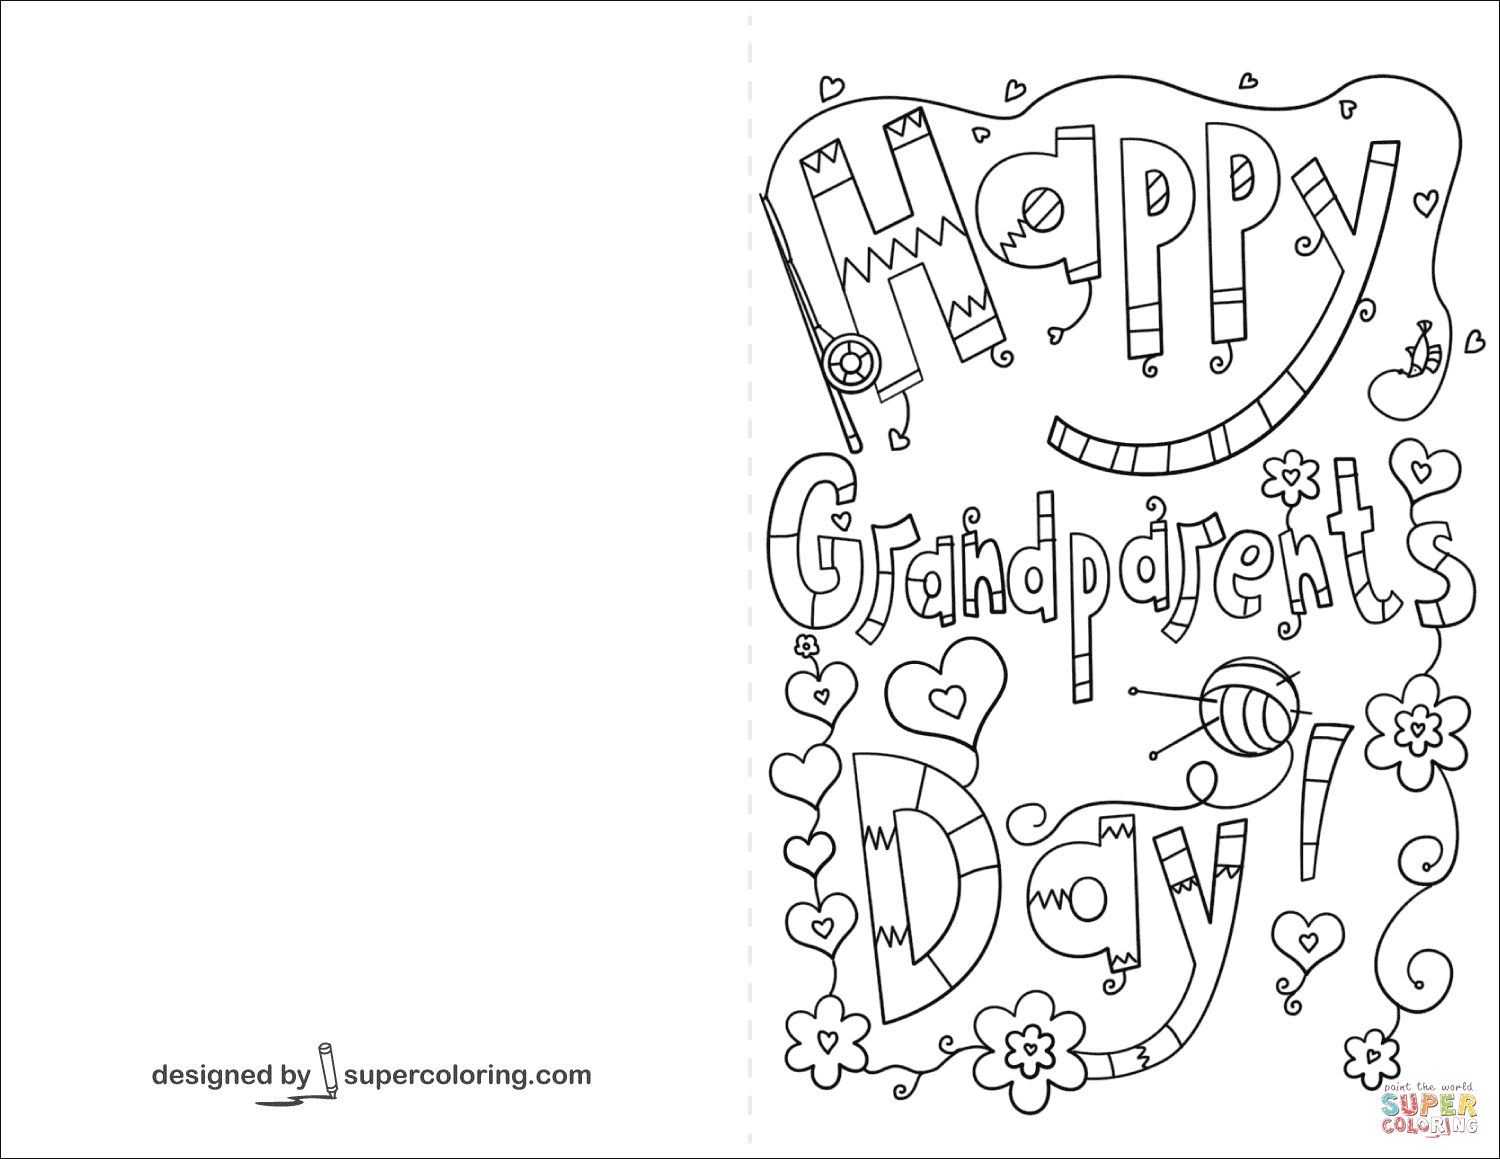 Happy Grandparents Day Doodle Card Coloring Page